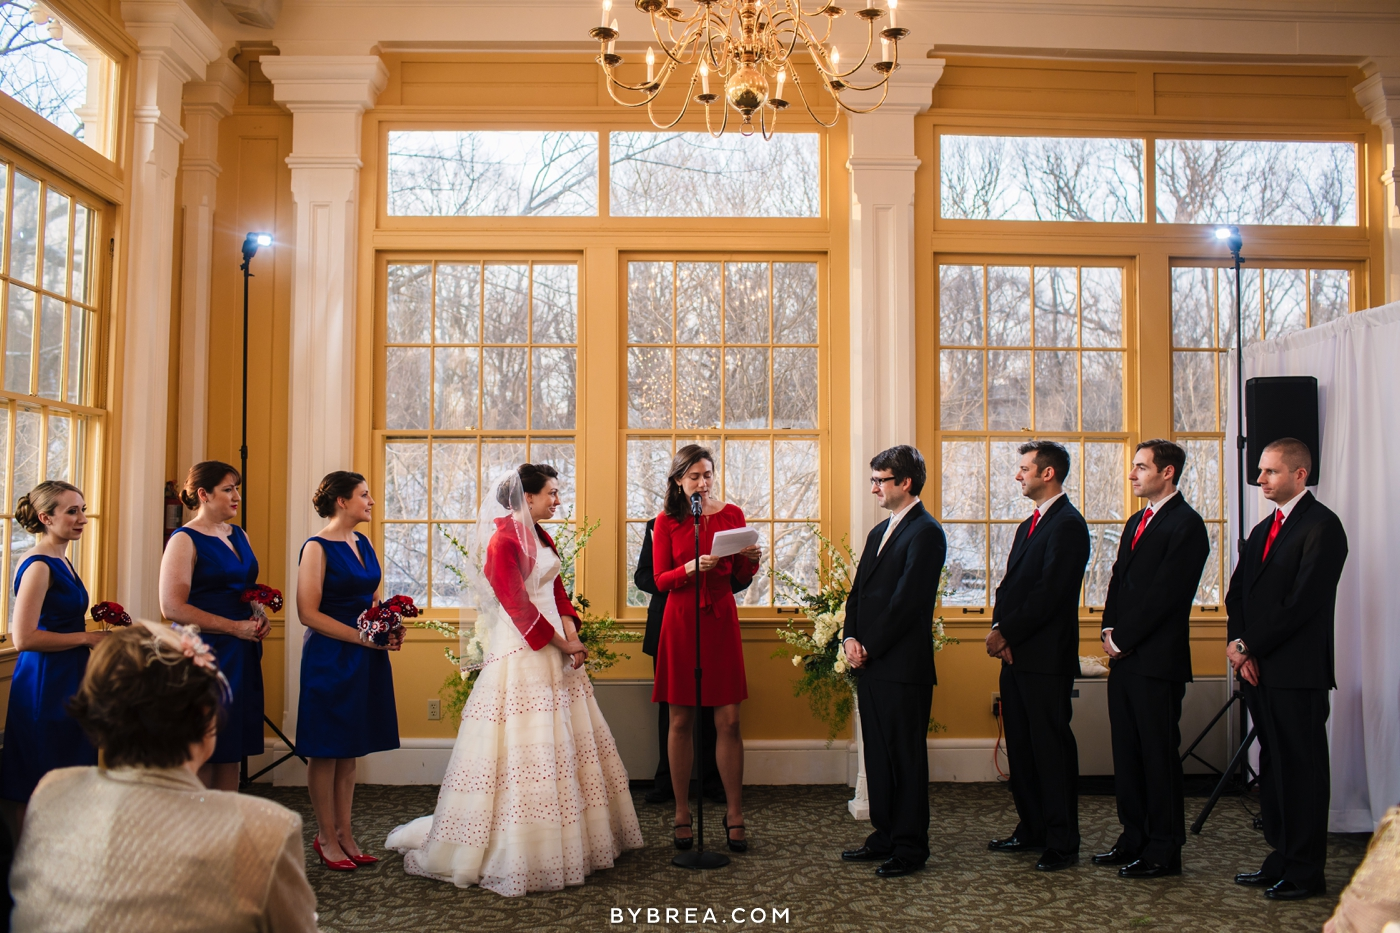 Maryland Zoo In Baltimore Wedding Photo Ceremony Officiant Historic Windows